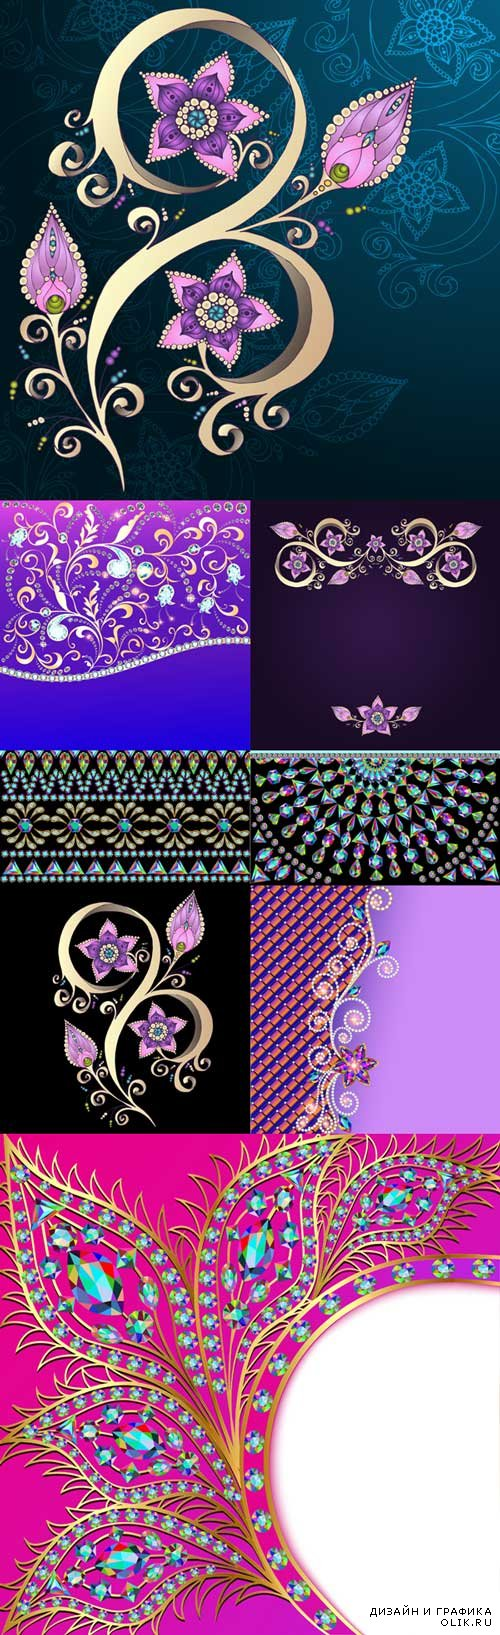 Vector background with floral ornaments and precious stones